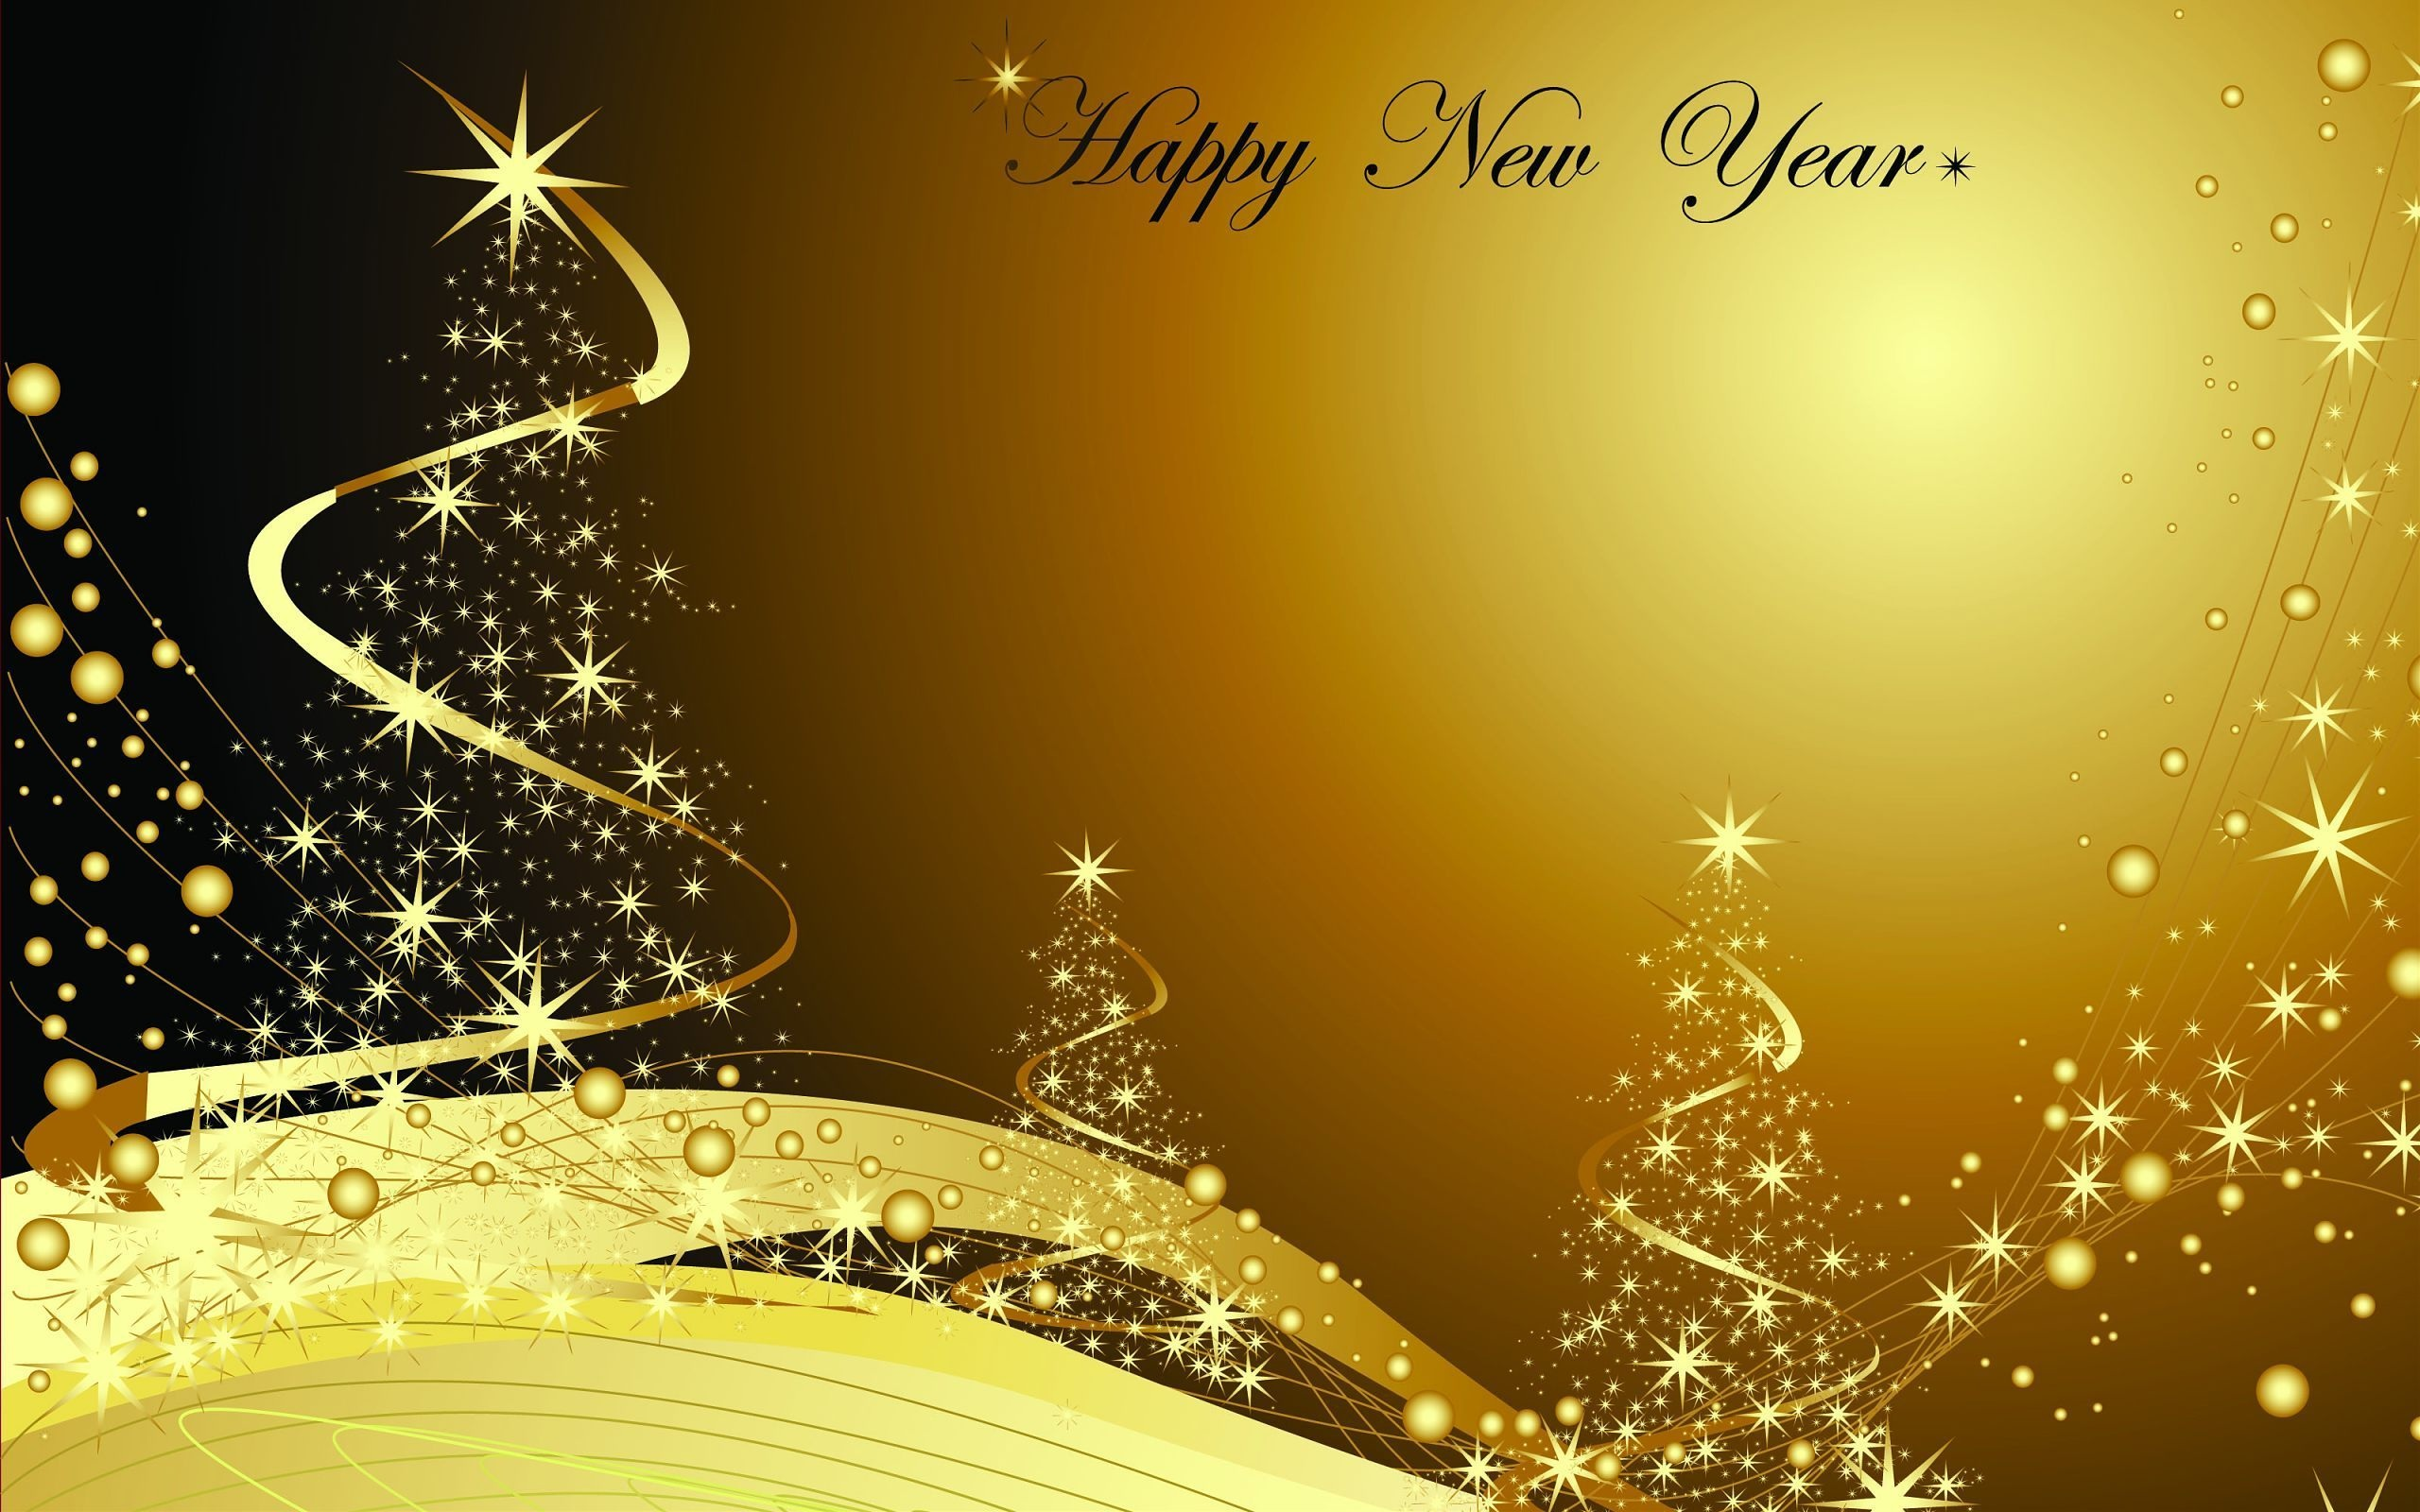 65+] New Year 2015 Desktop Wallpapers on WallpaperSafari